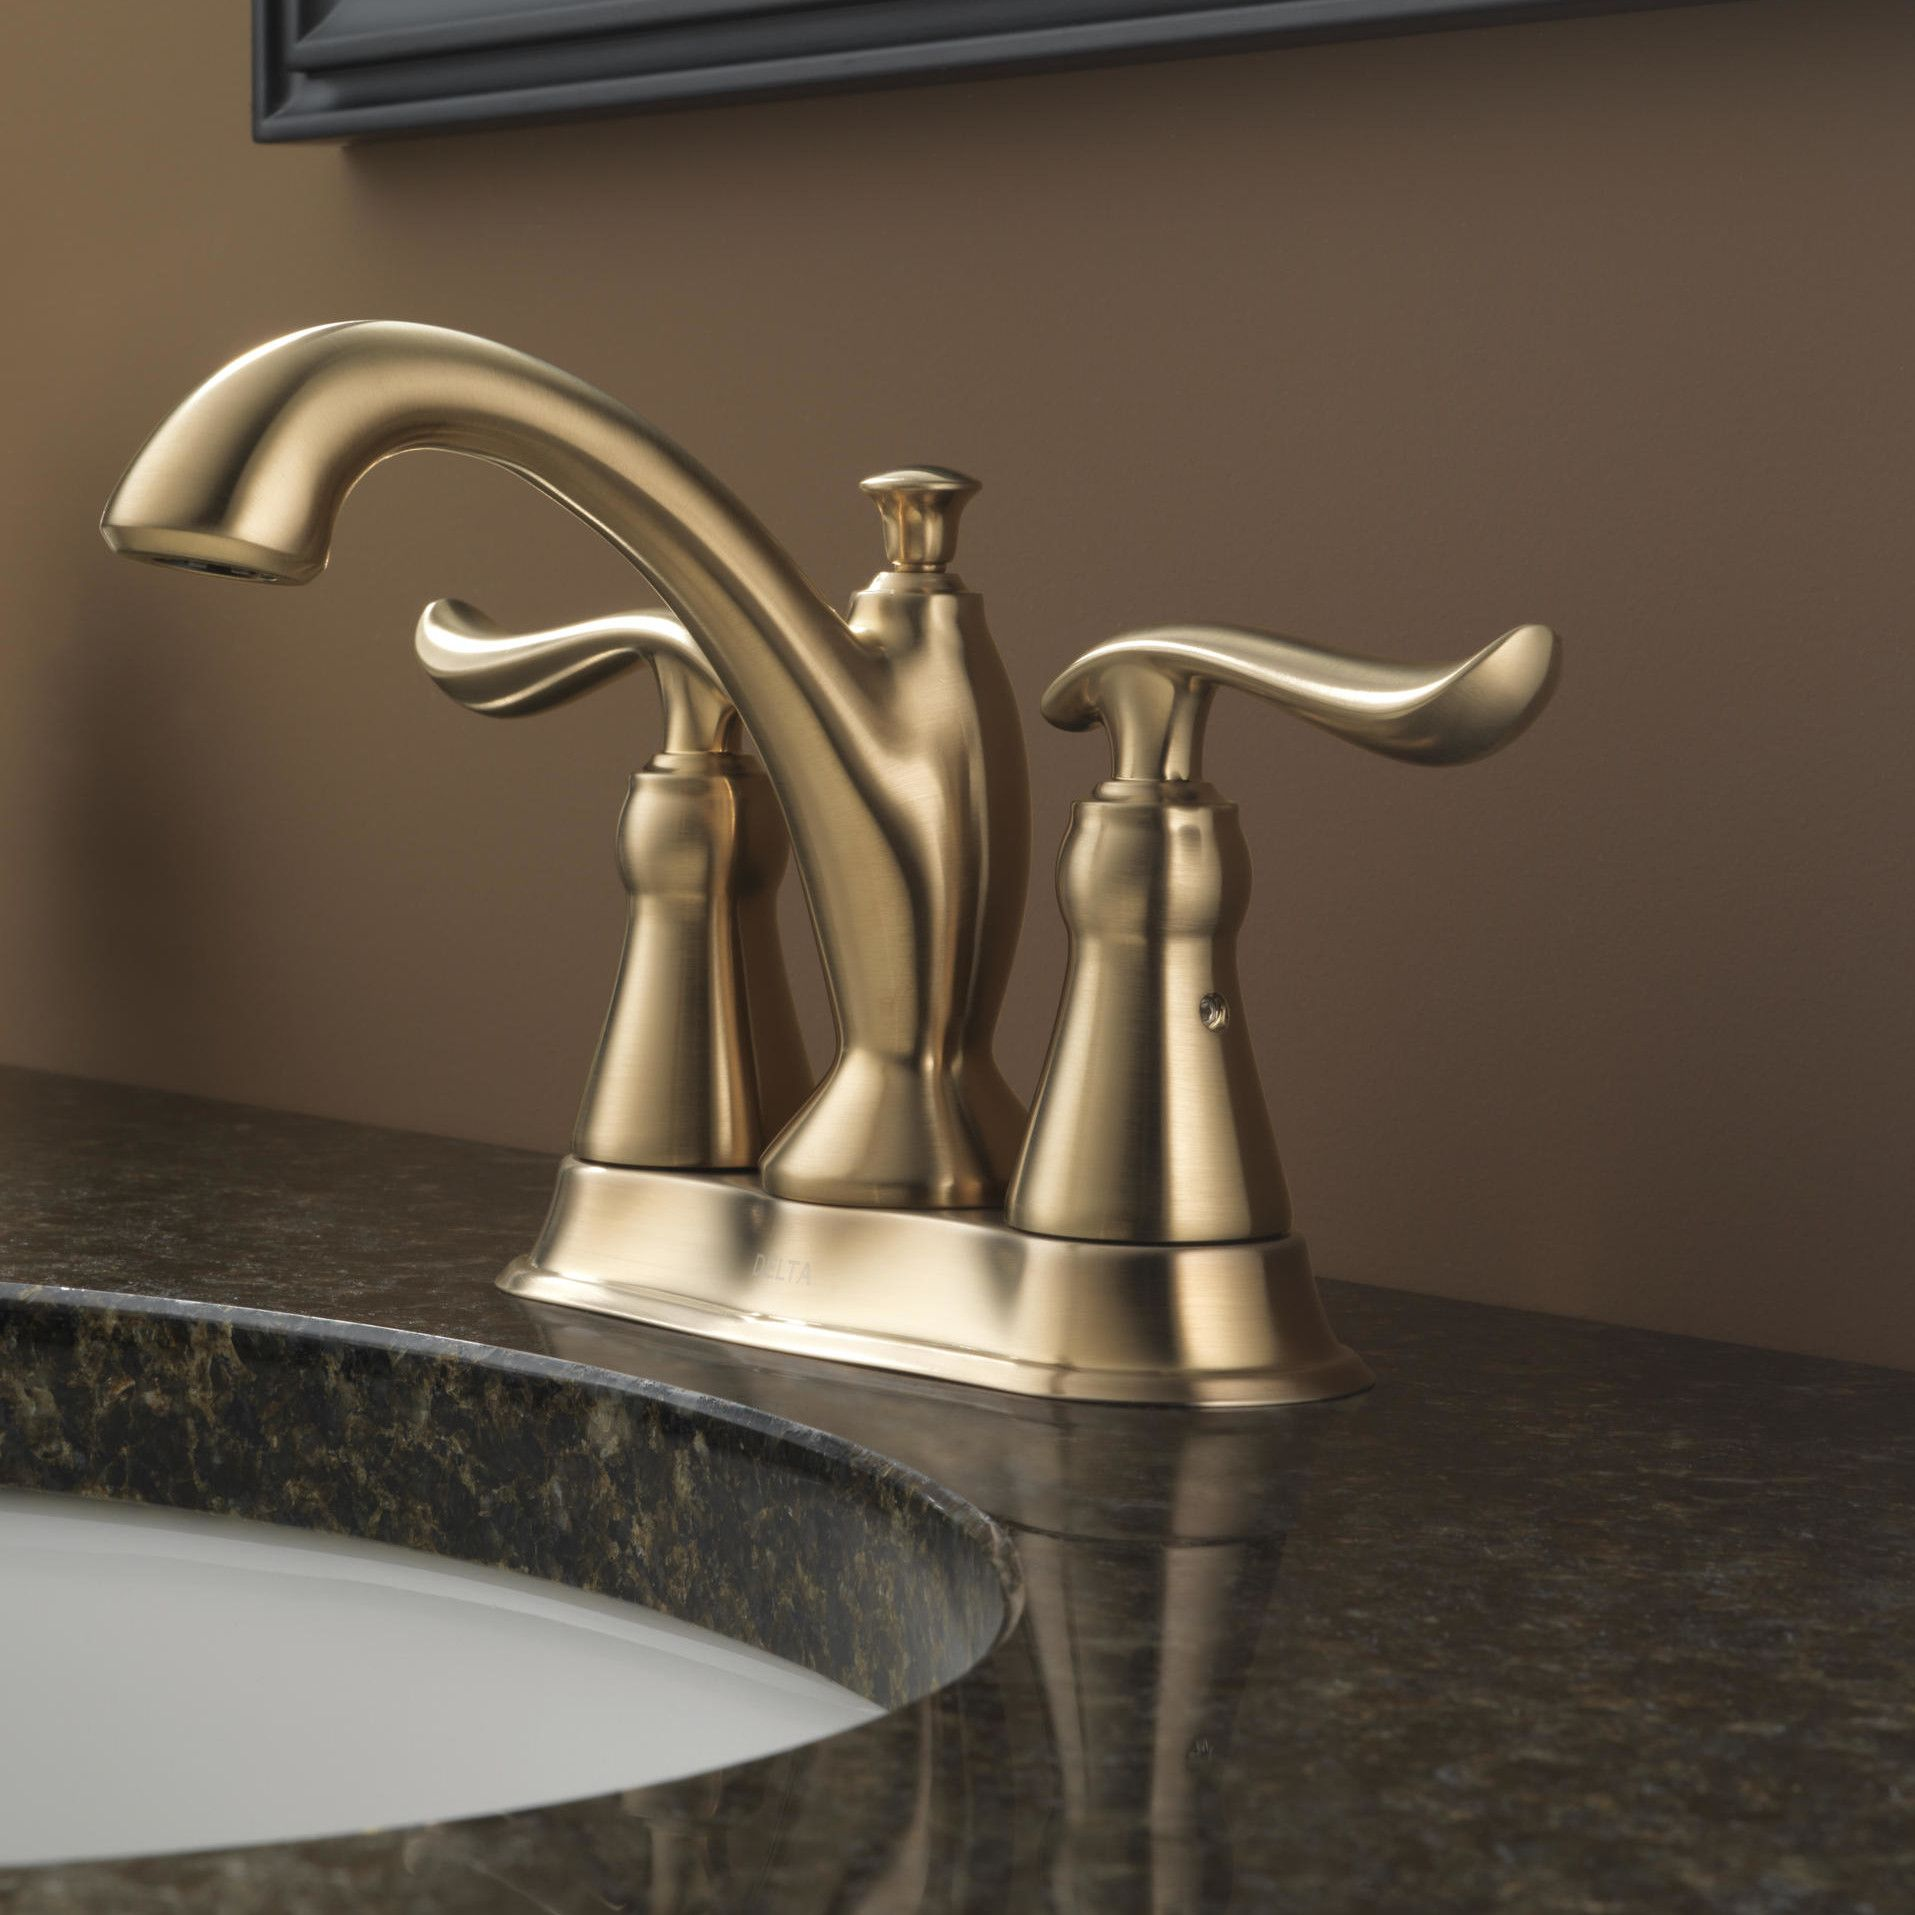 Linden Standard Lever Handle Bathroom Faucet with Drain Assembly ...